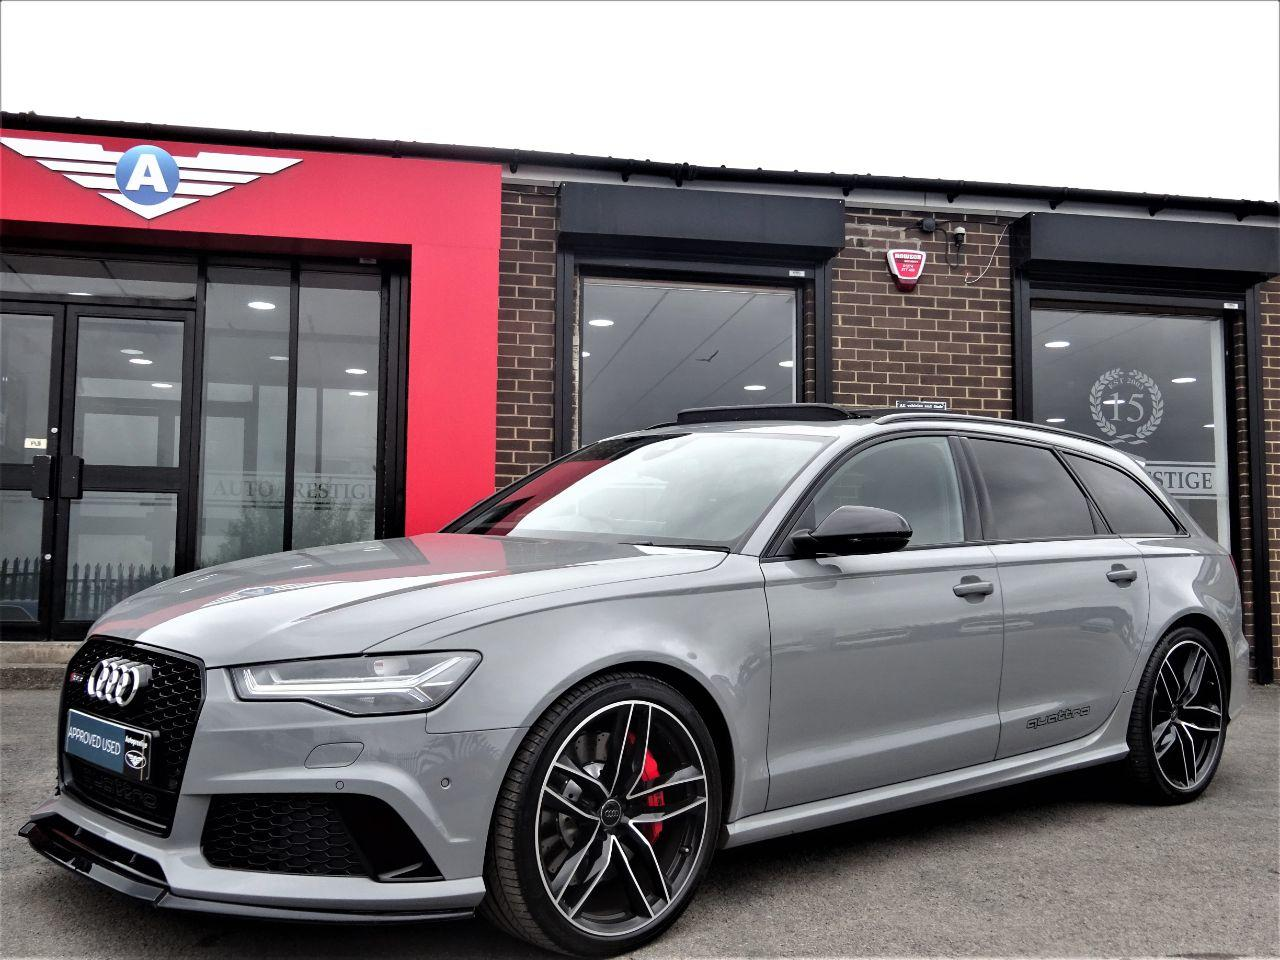 Audi RS6 4.0T FSI Quattro RS 6 5dr Tip Auto NARDO GREY MASSIVE SPEC 2016 MODEL 1 OWNER Estate Petrol Nardo Grey at Autoprestige Bradford